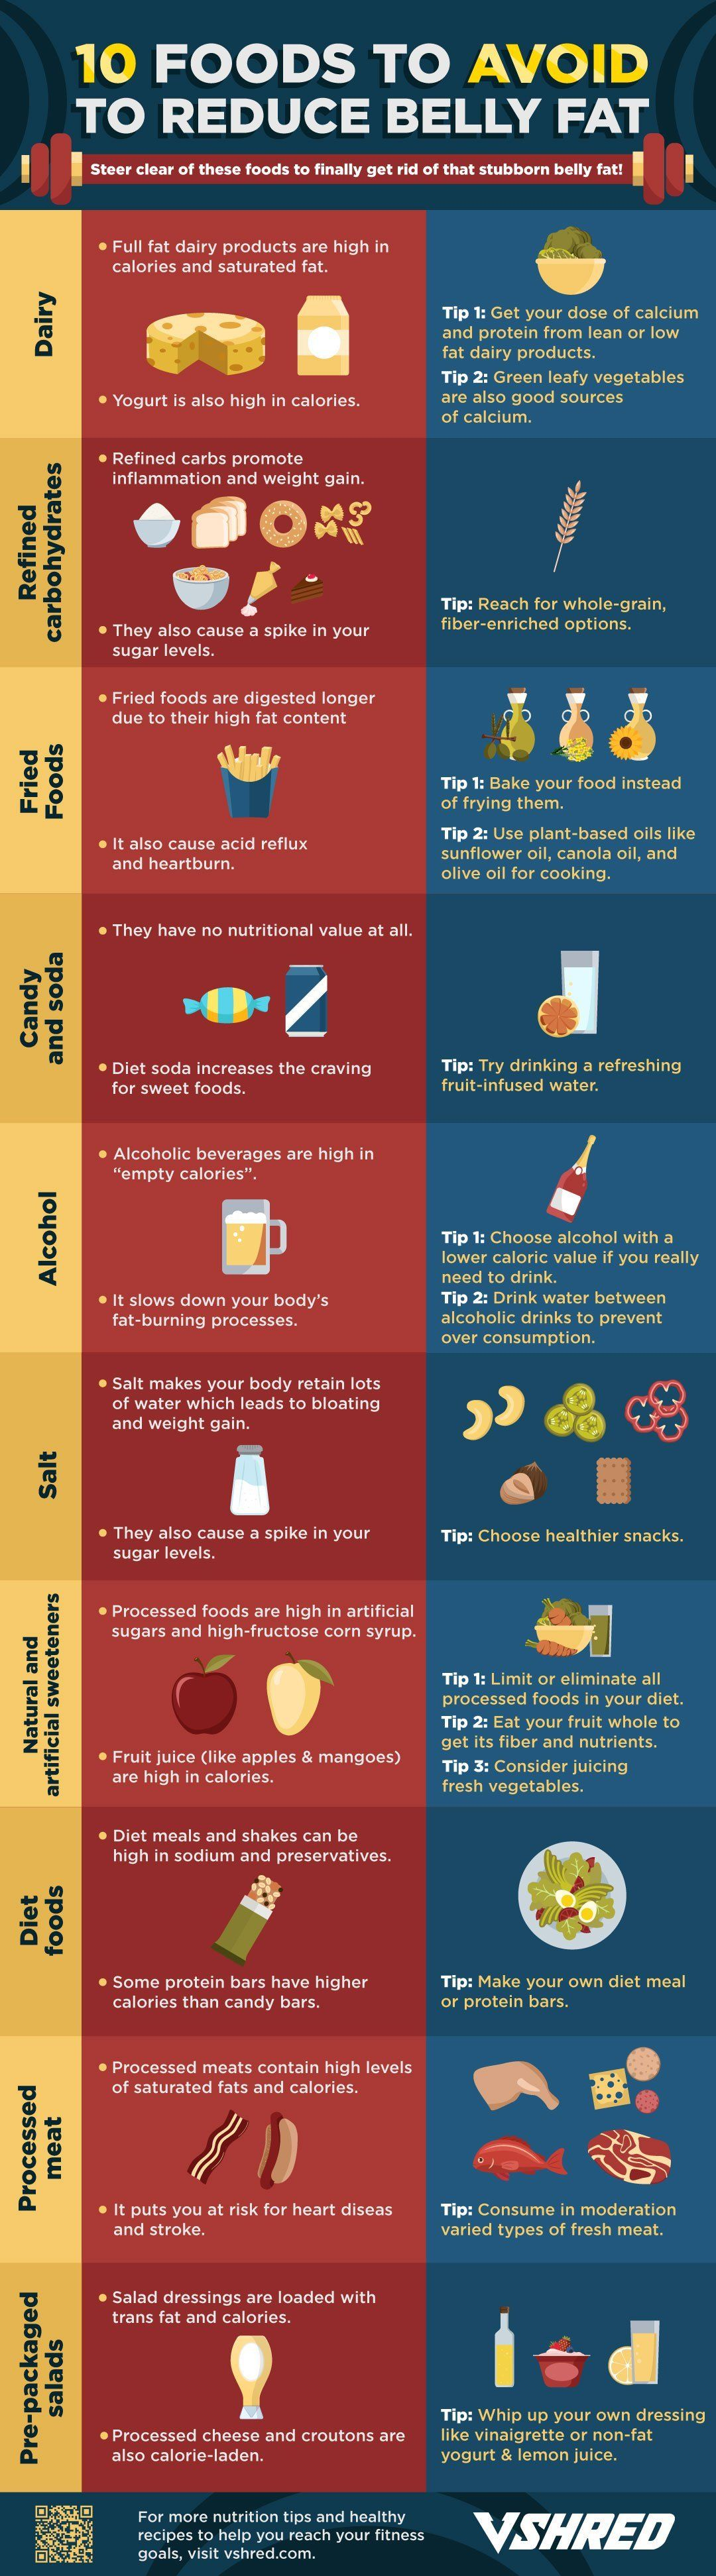 Best Of 2018 On Foods To Avoid Food Infographic Workout Diet Plan